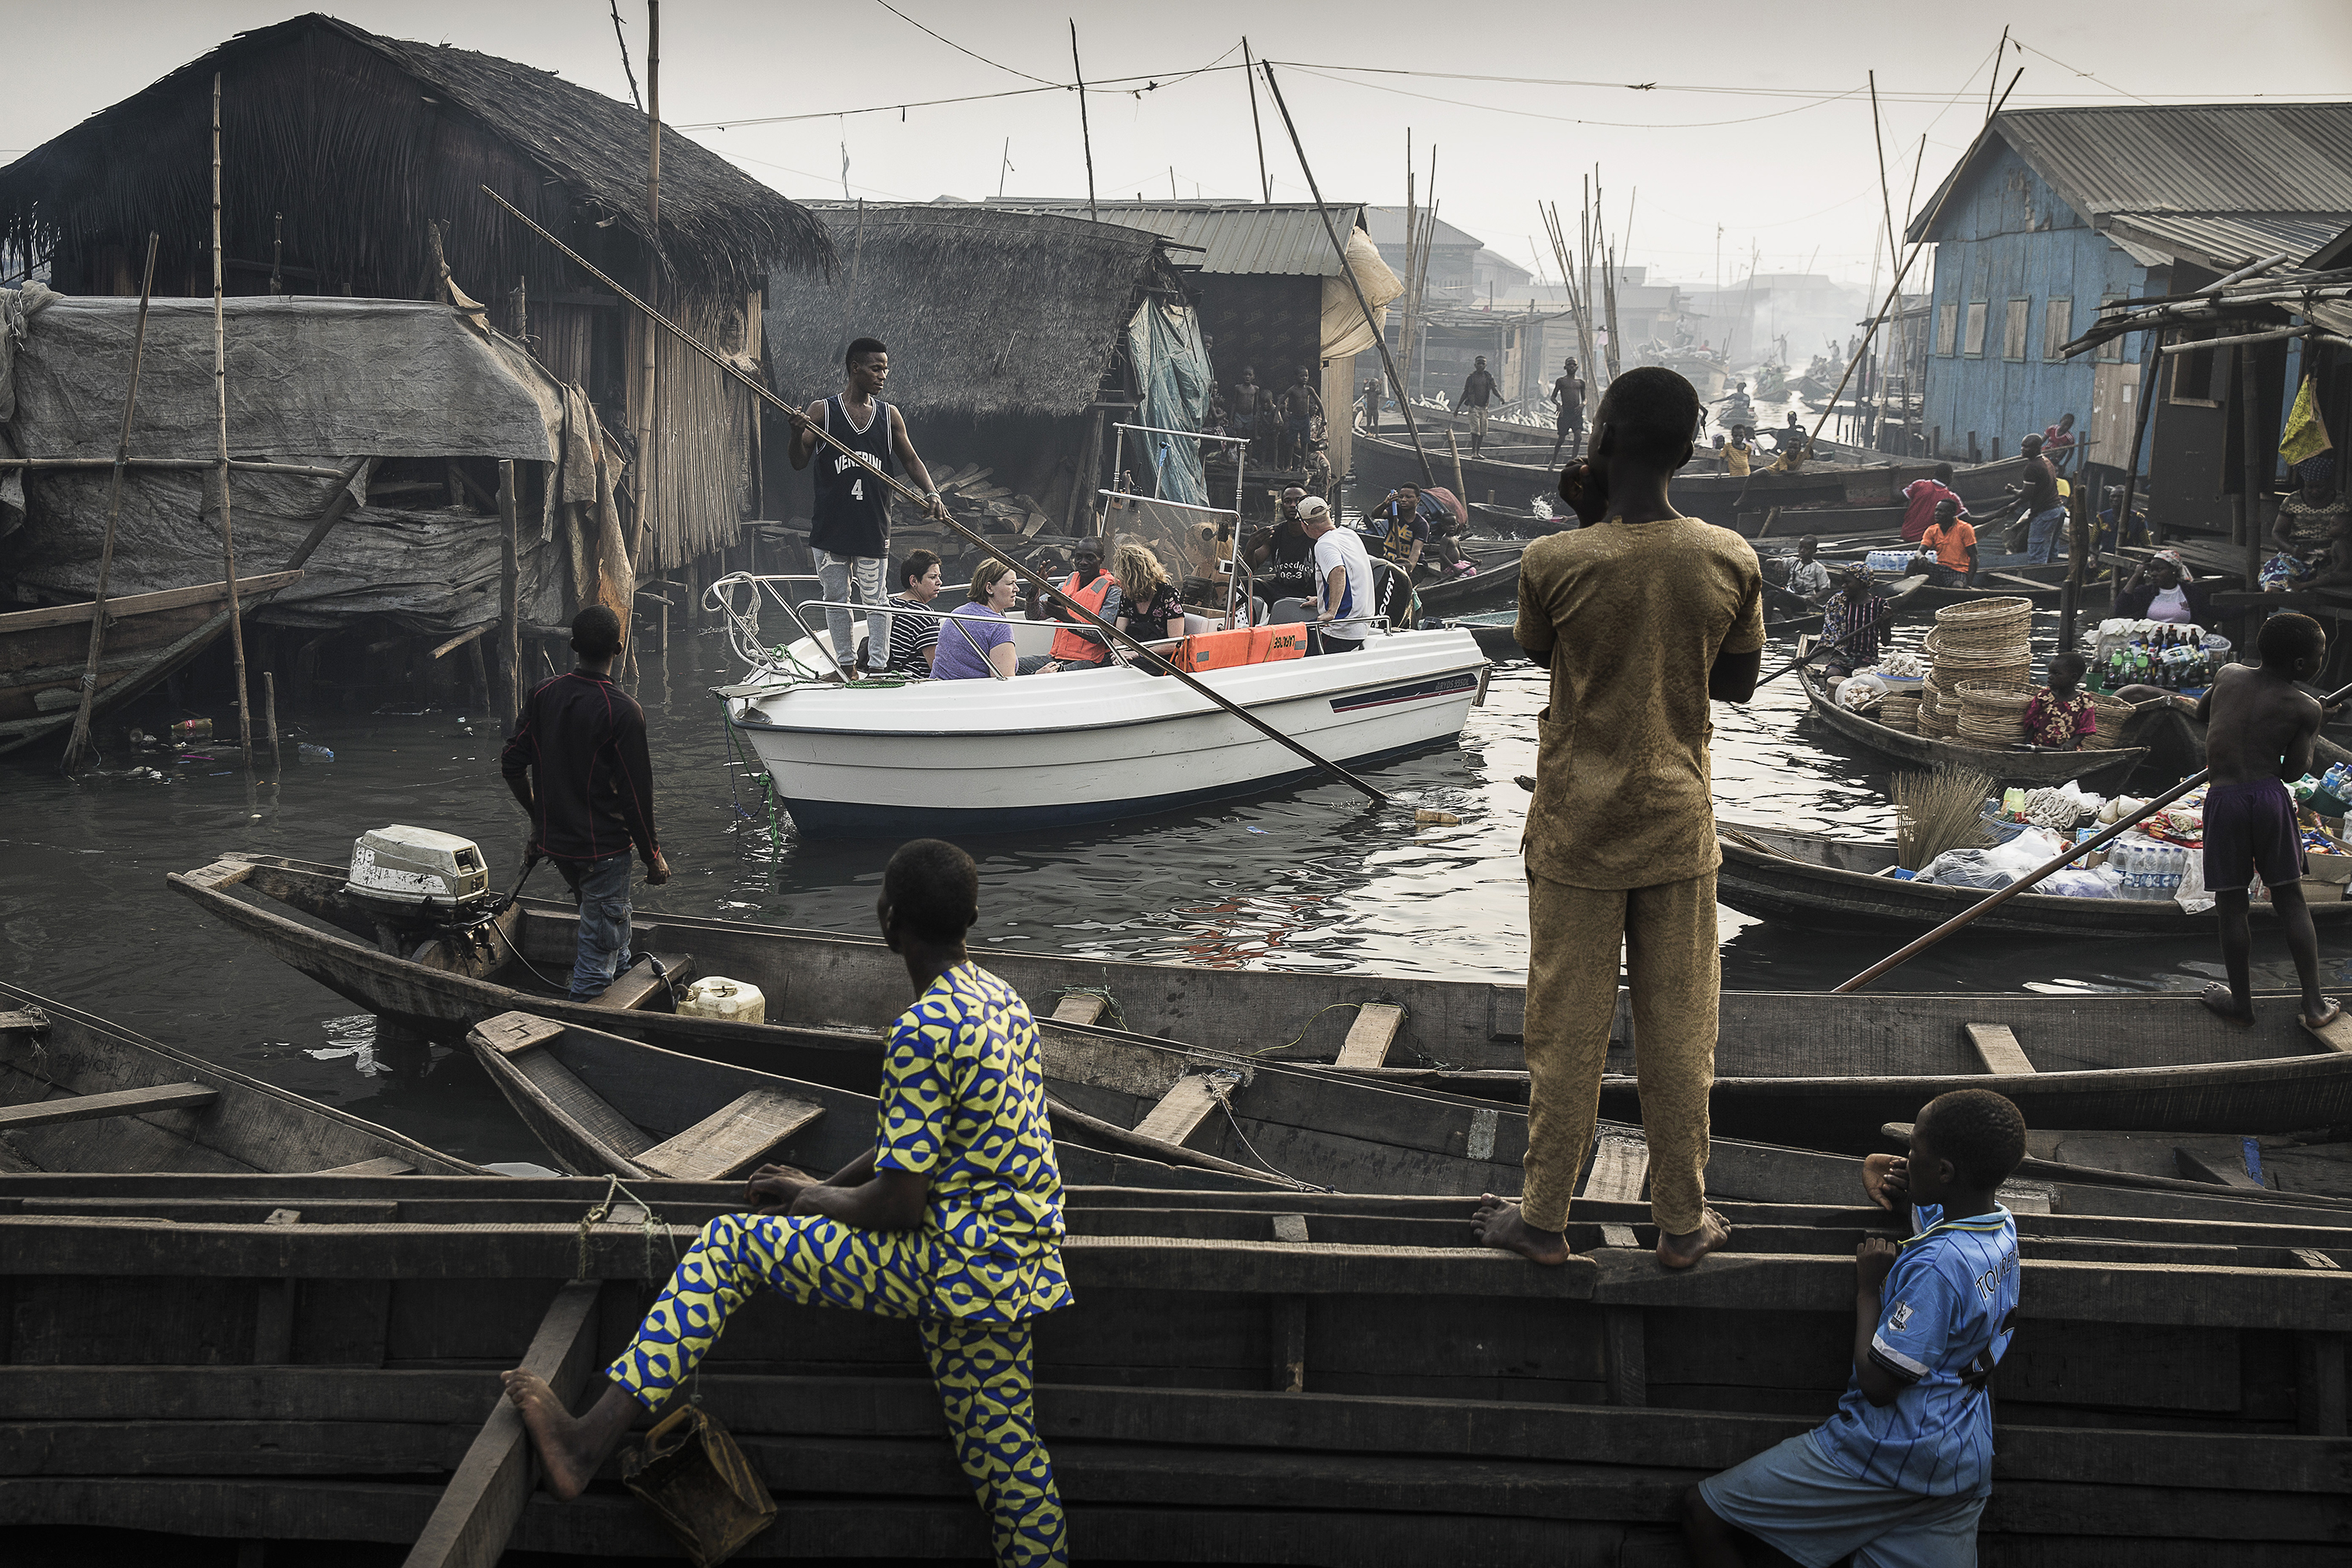 Lagos Waterfronts under Threat © Jesco Denzel, laif